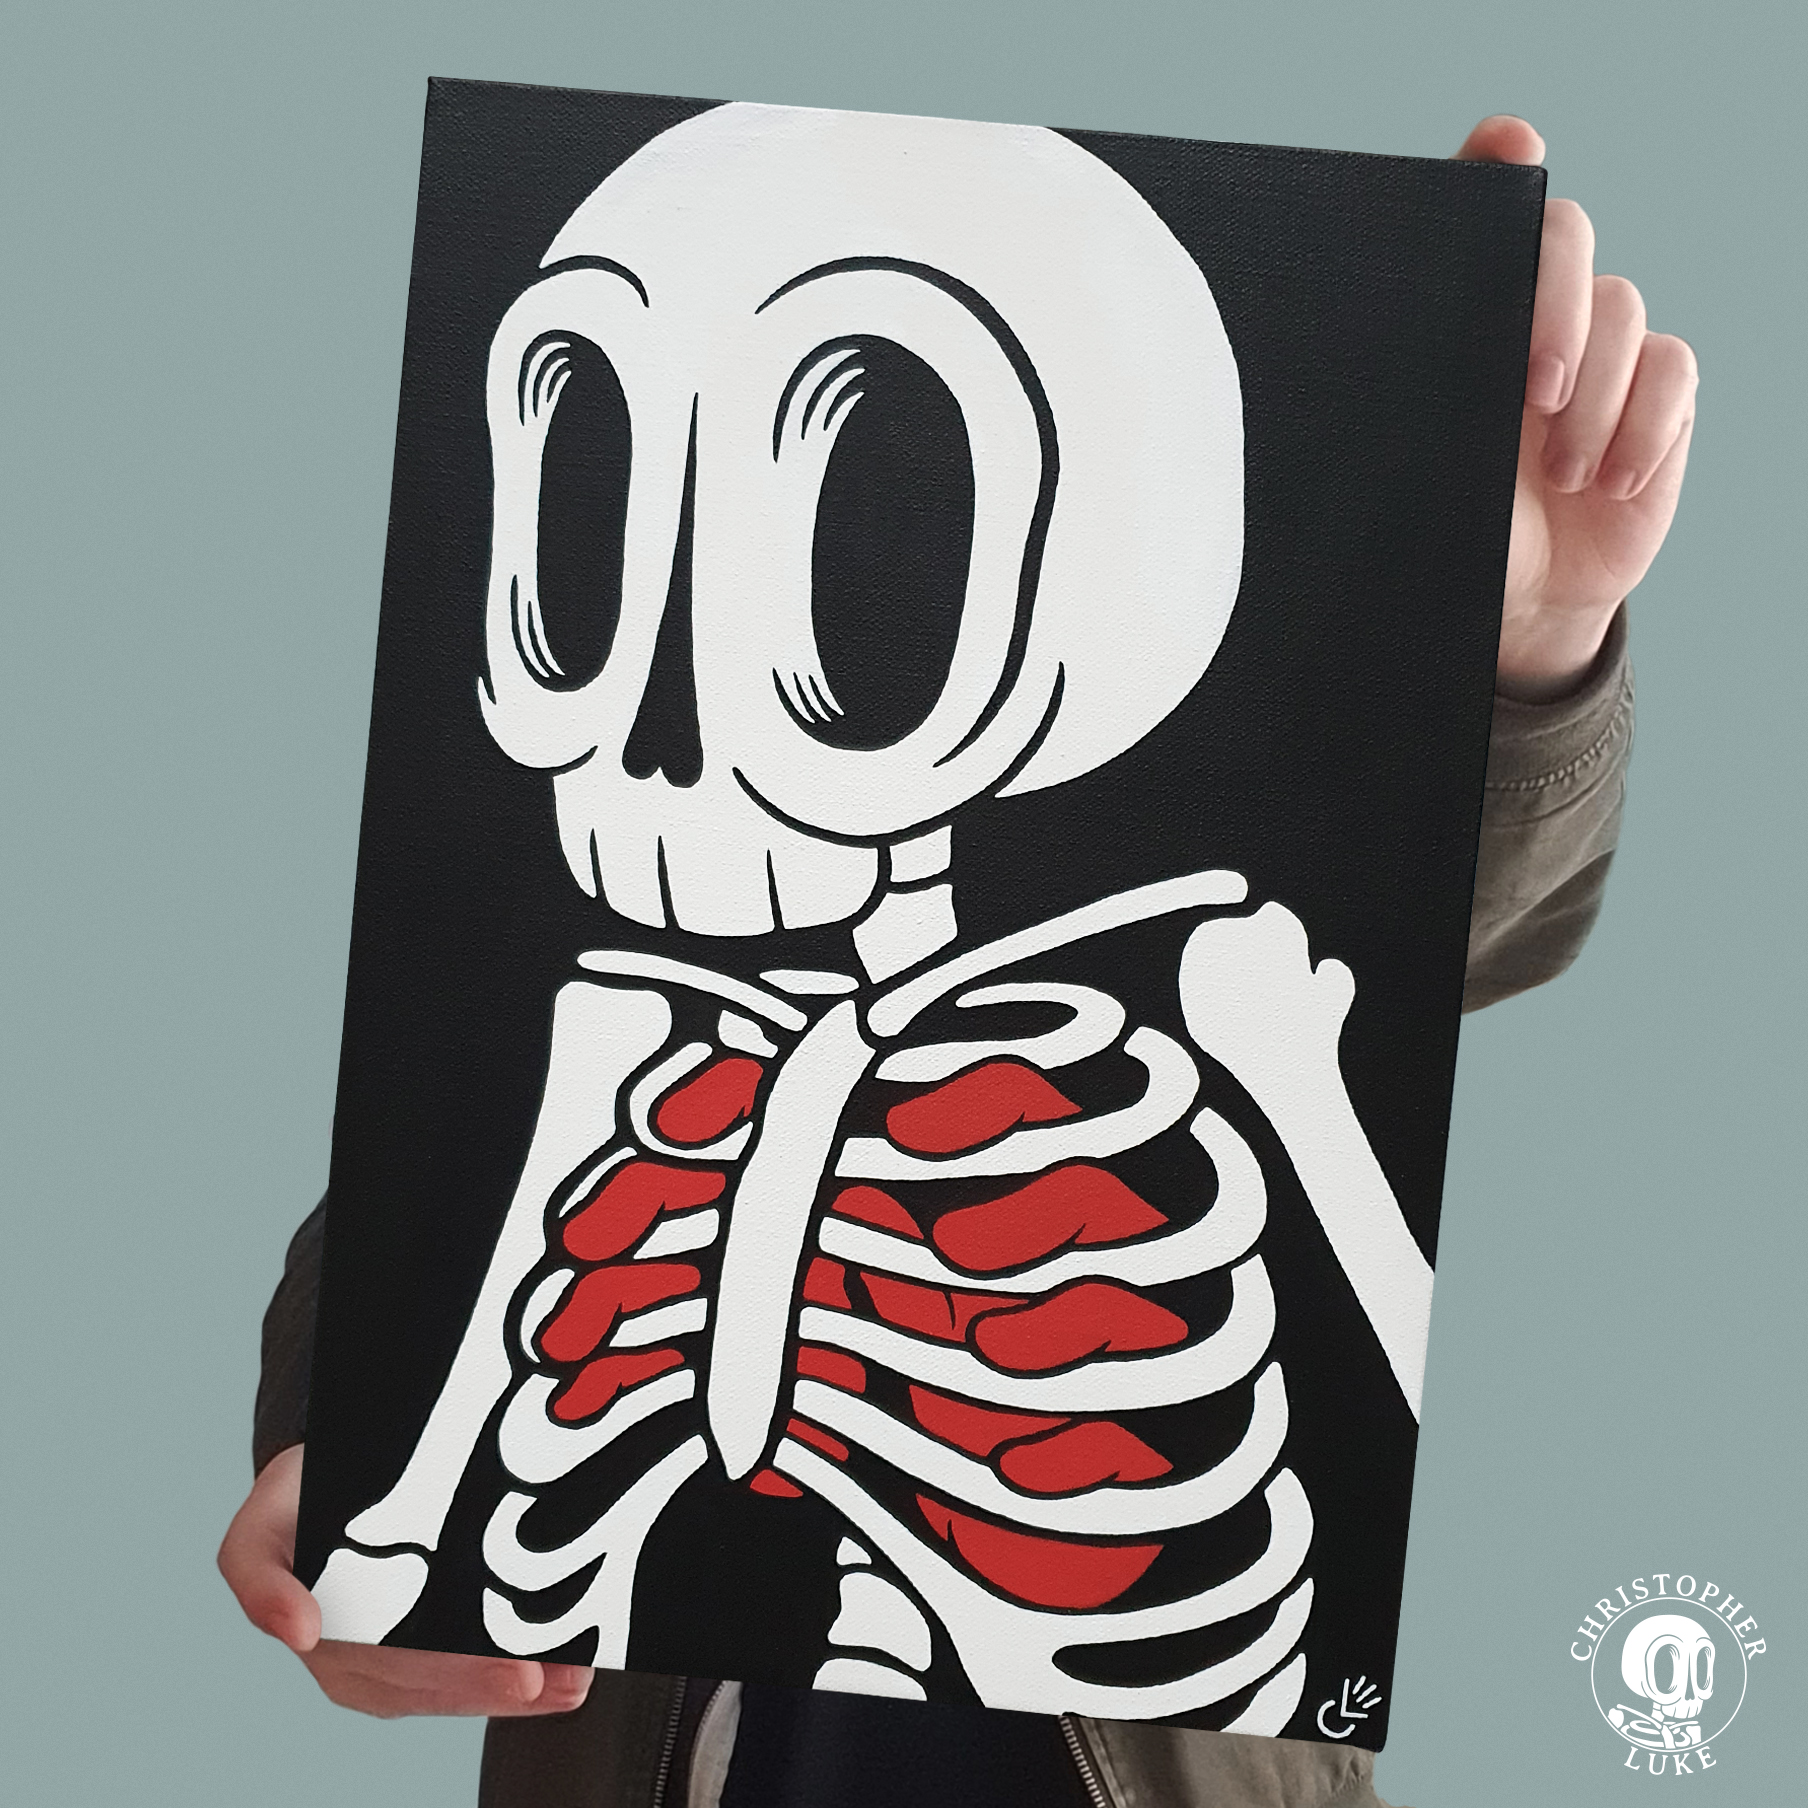 Black, white, and red painting of a skeleton by Christopher Luke.